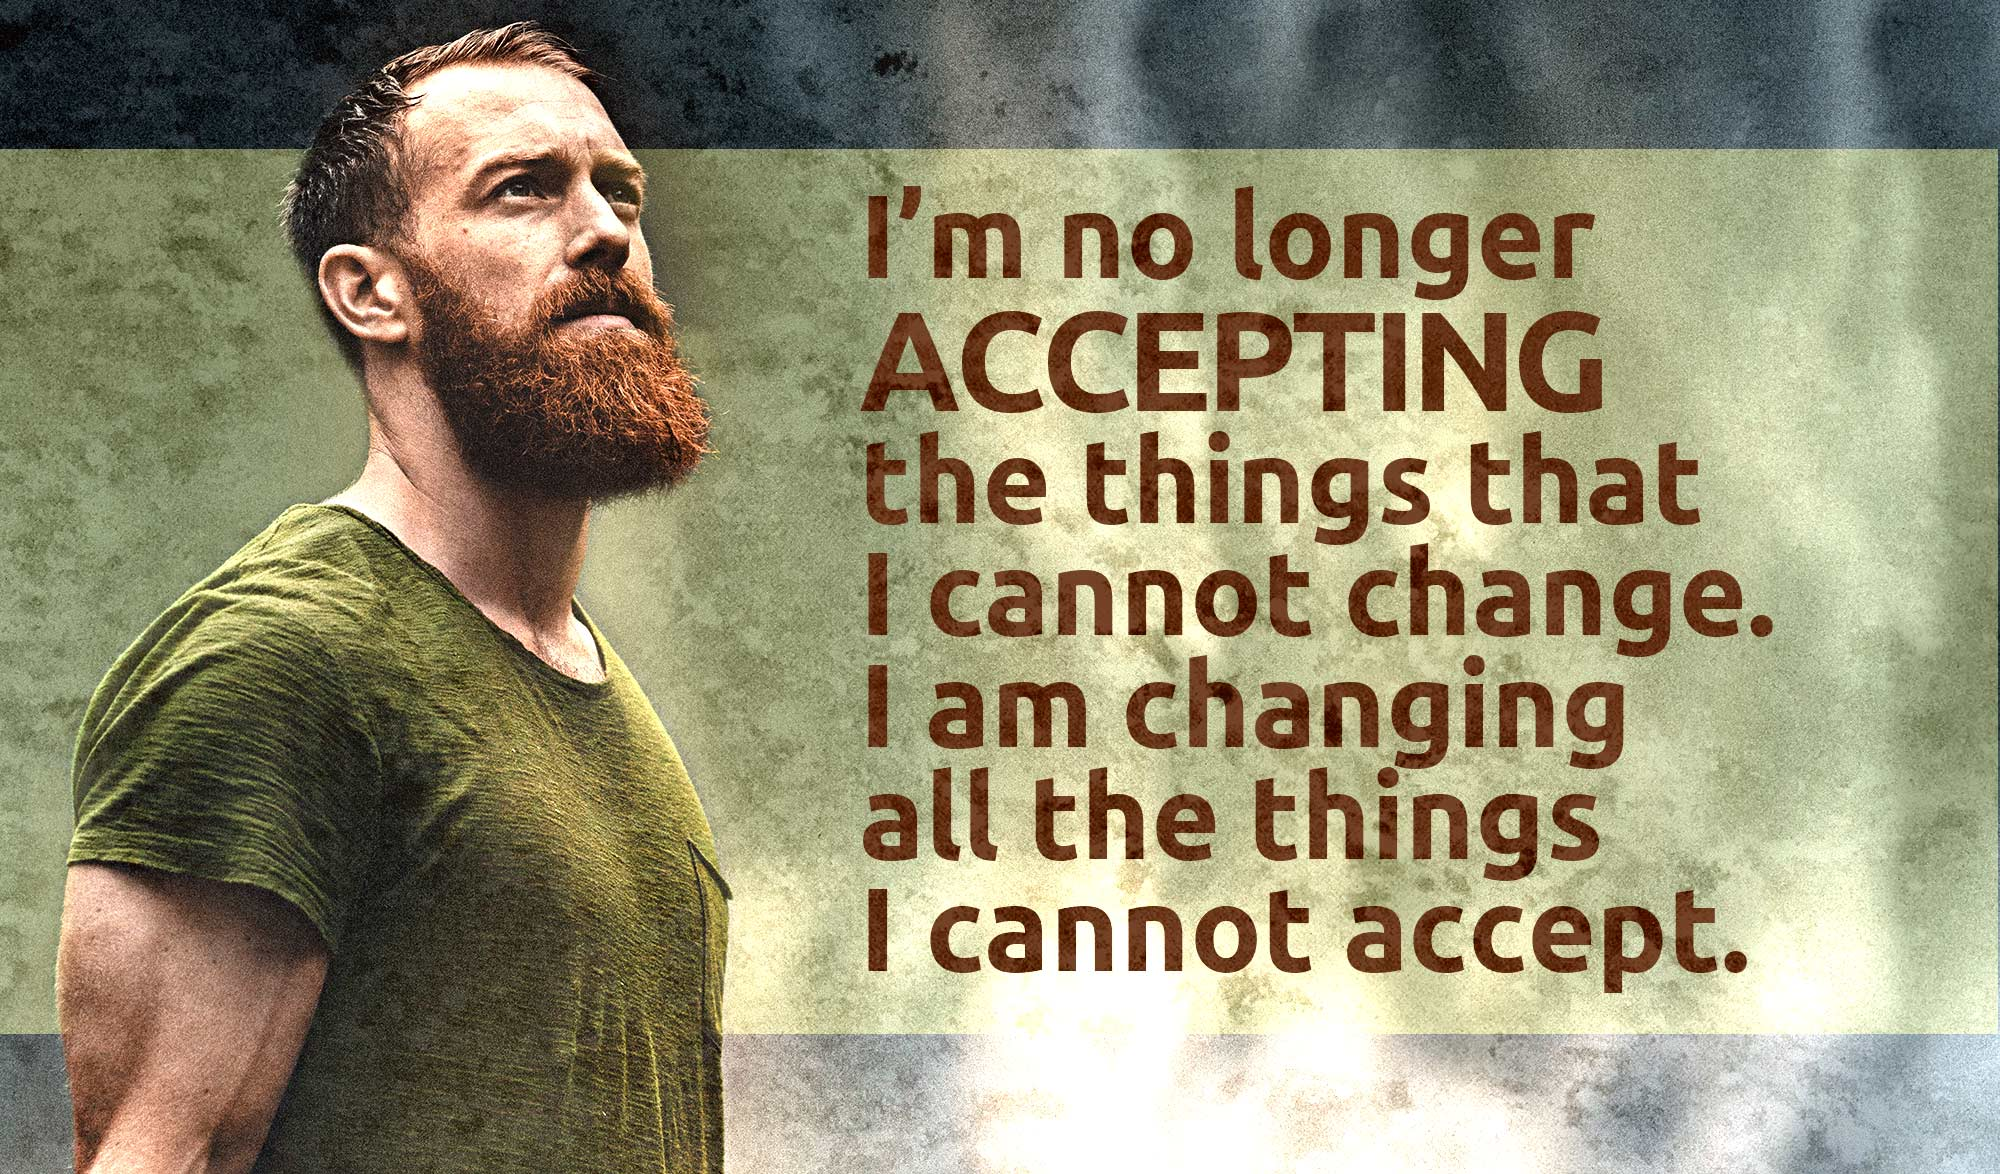 daily inspirational quote image: a red headed, bearded man, looking defiant